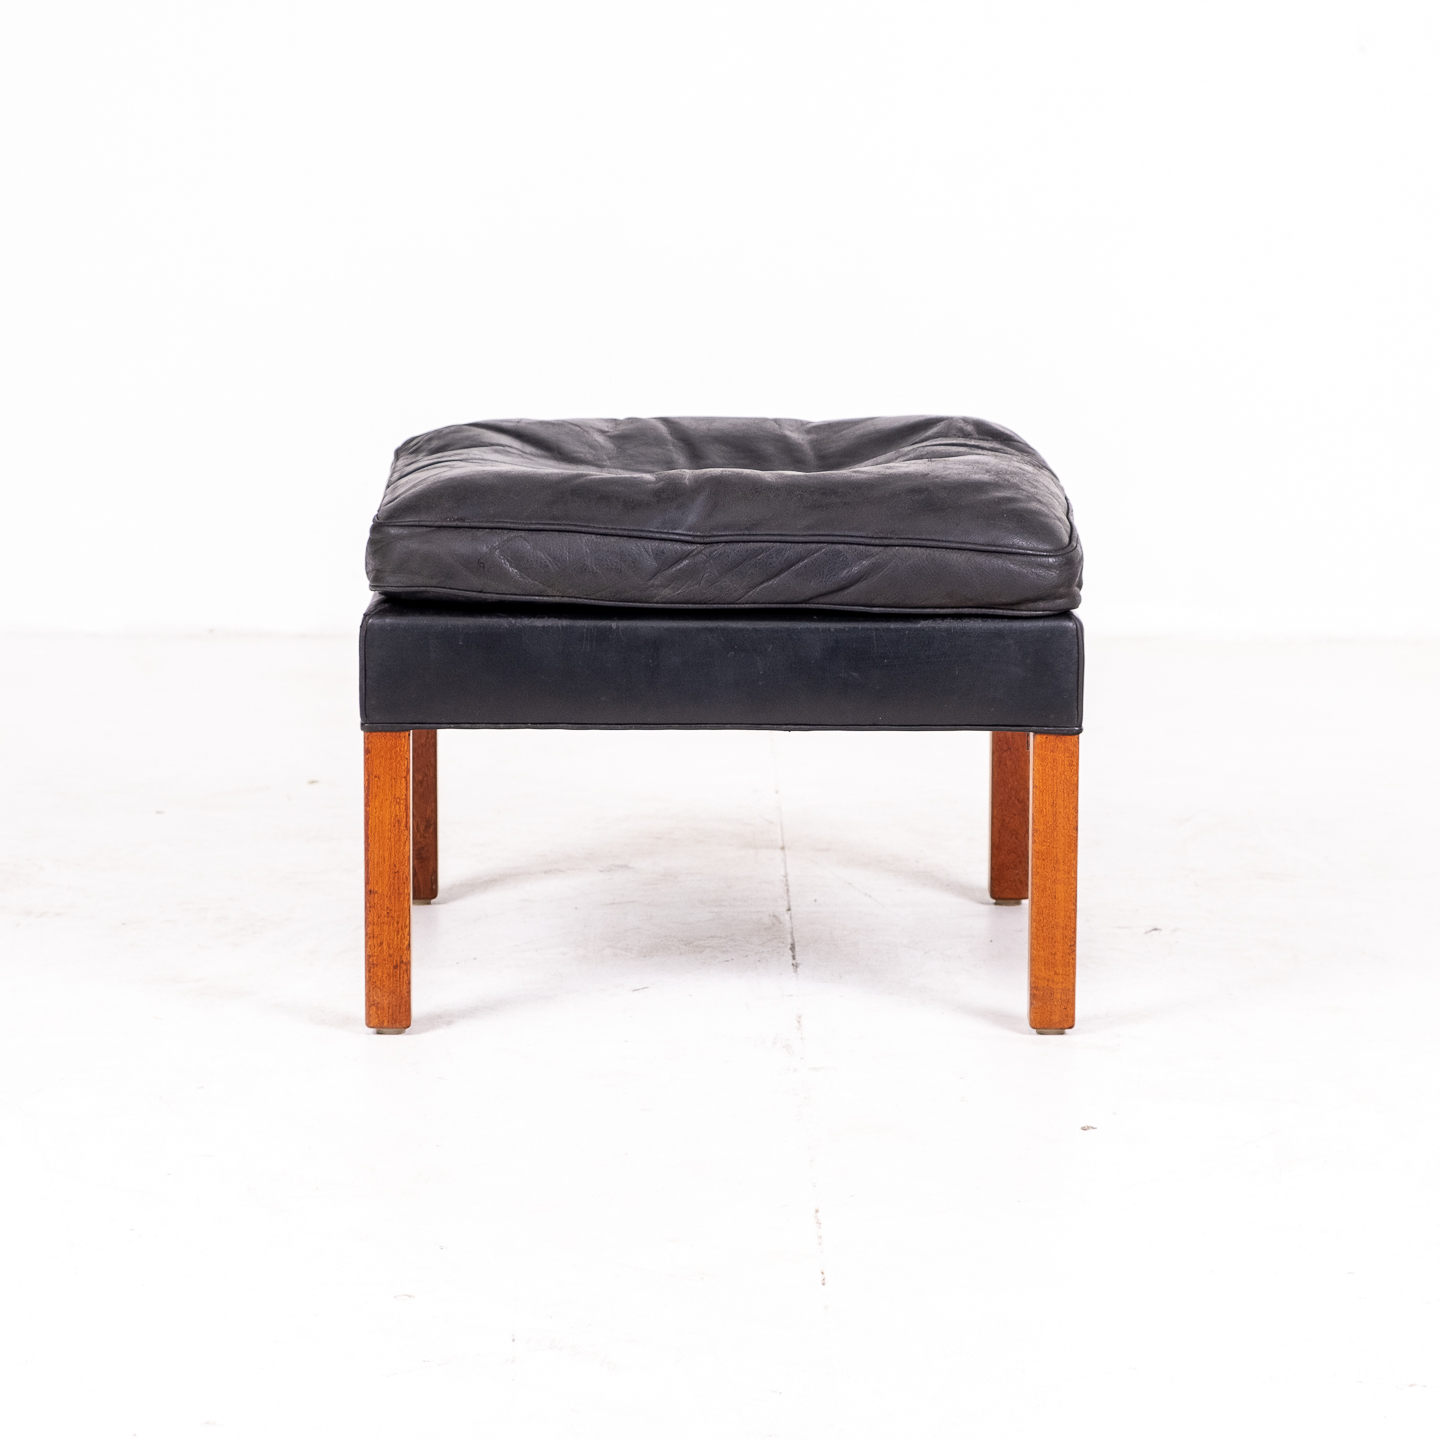 Model 2207 Armchair With Footstool Designed By Borge Mogensen For Fredericia Mobelfabrik In Black Leather, 1960s, Denmark 0000012